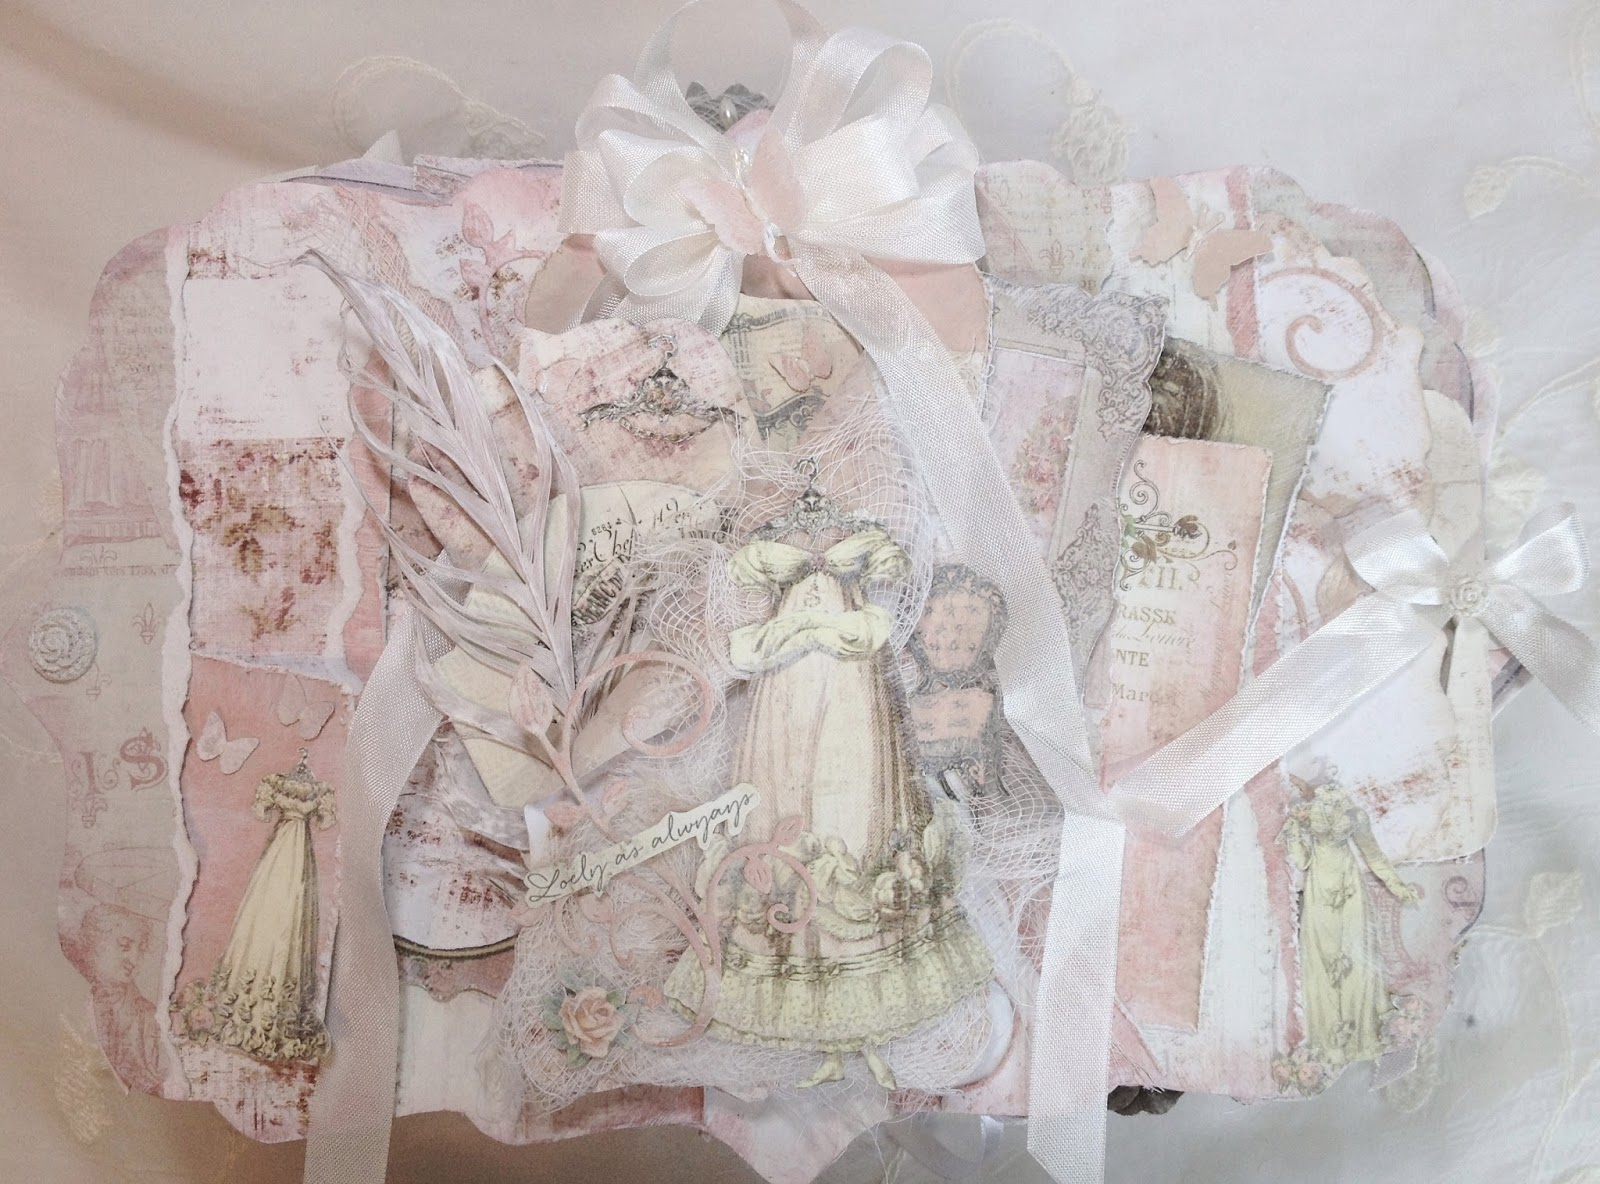 Shabby chic crafts to make - I Torn The Paper Into Strips To Make A Several Pockets